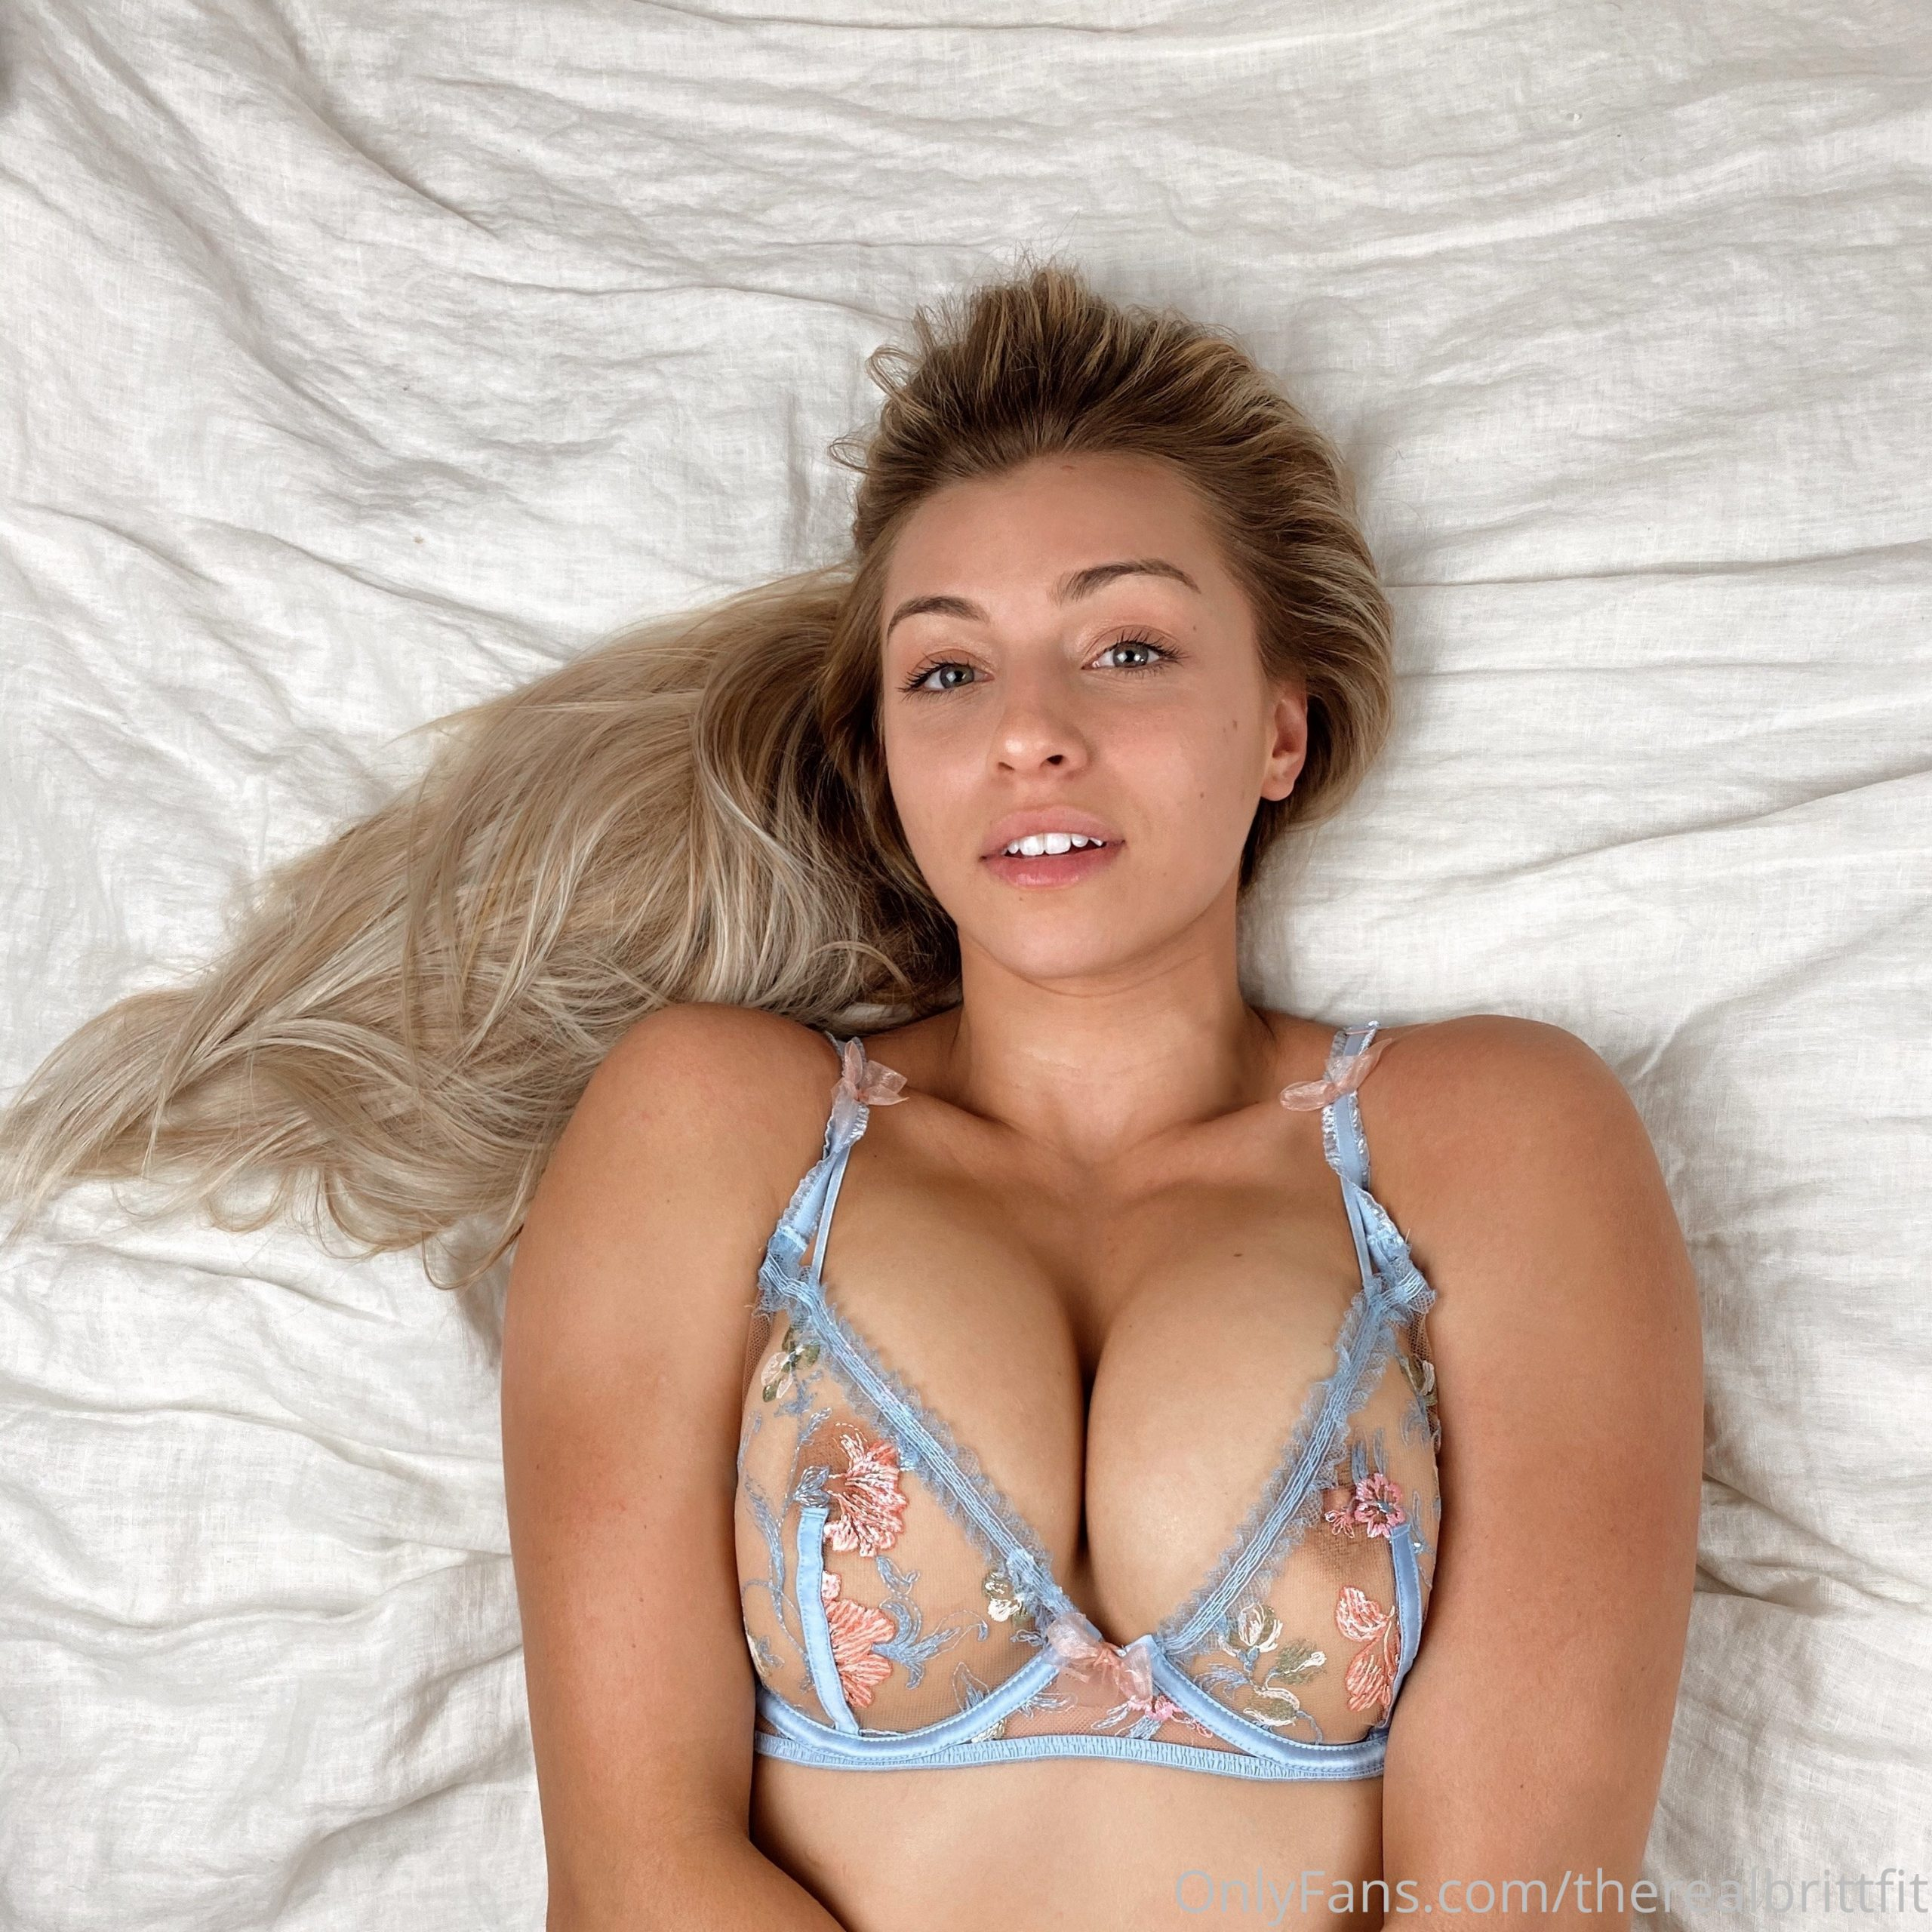 Therealbrittfit Latest Nude Onlyfans Leaked 0005